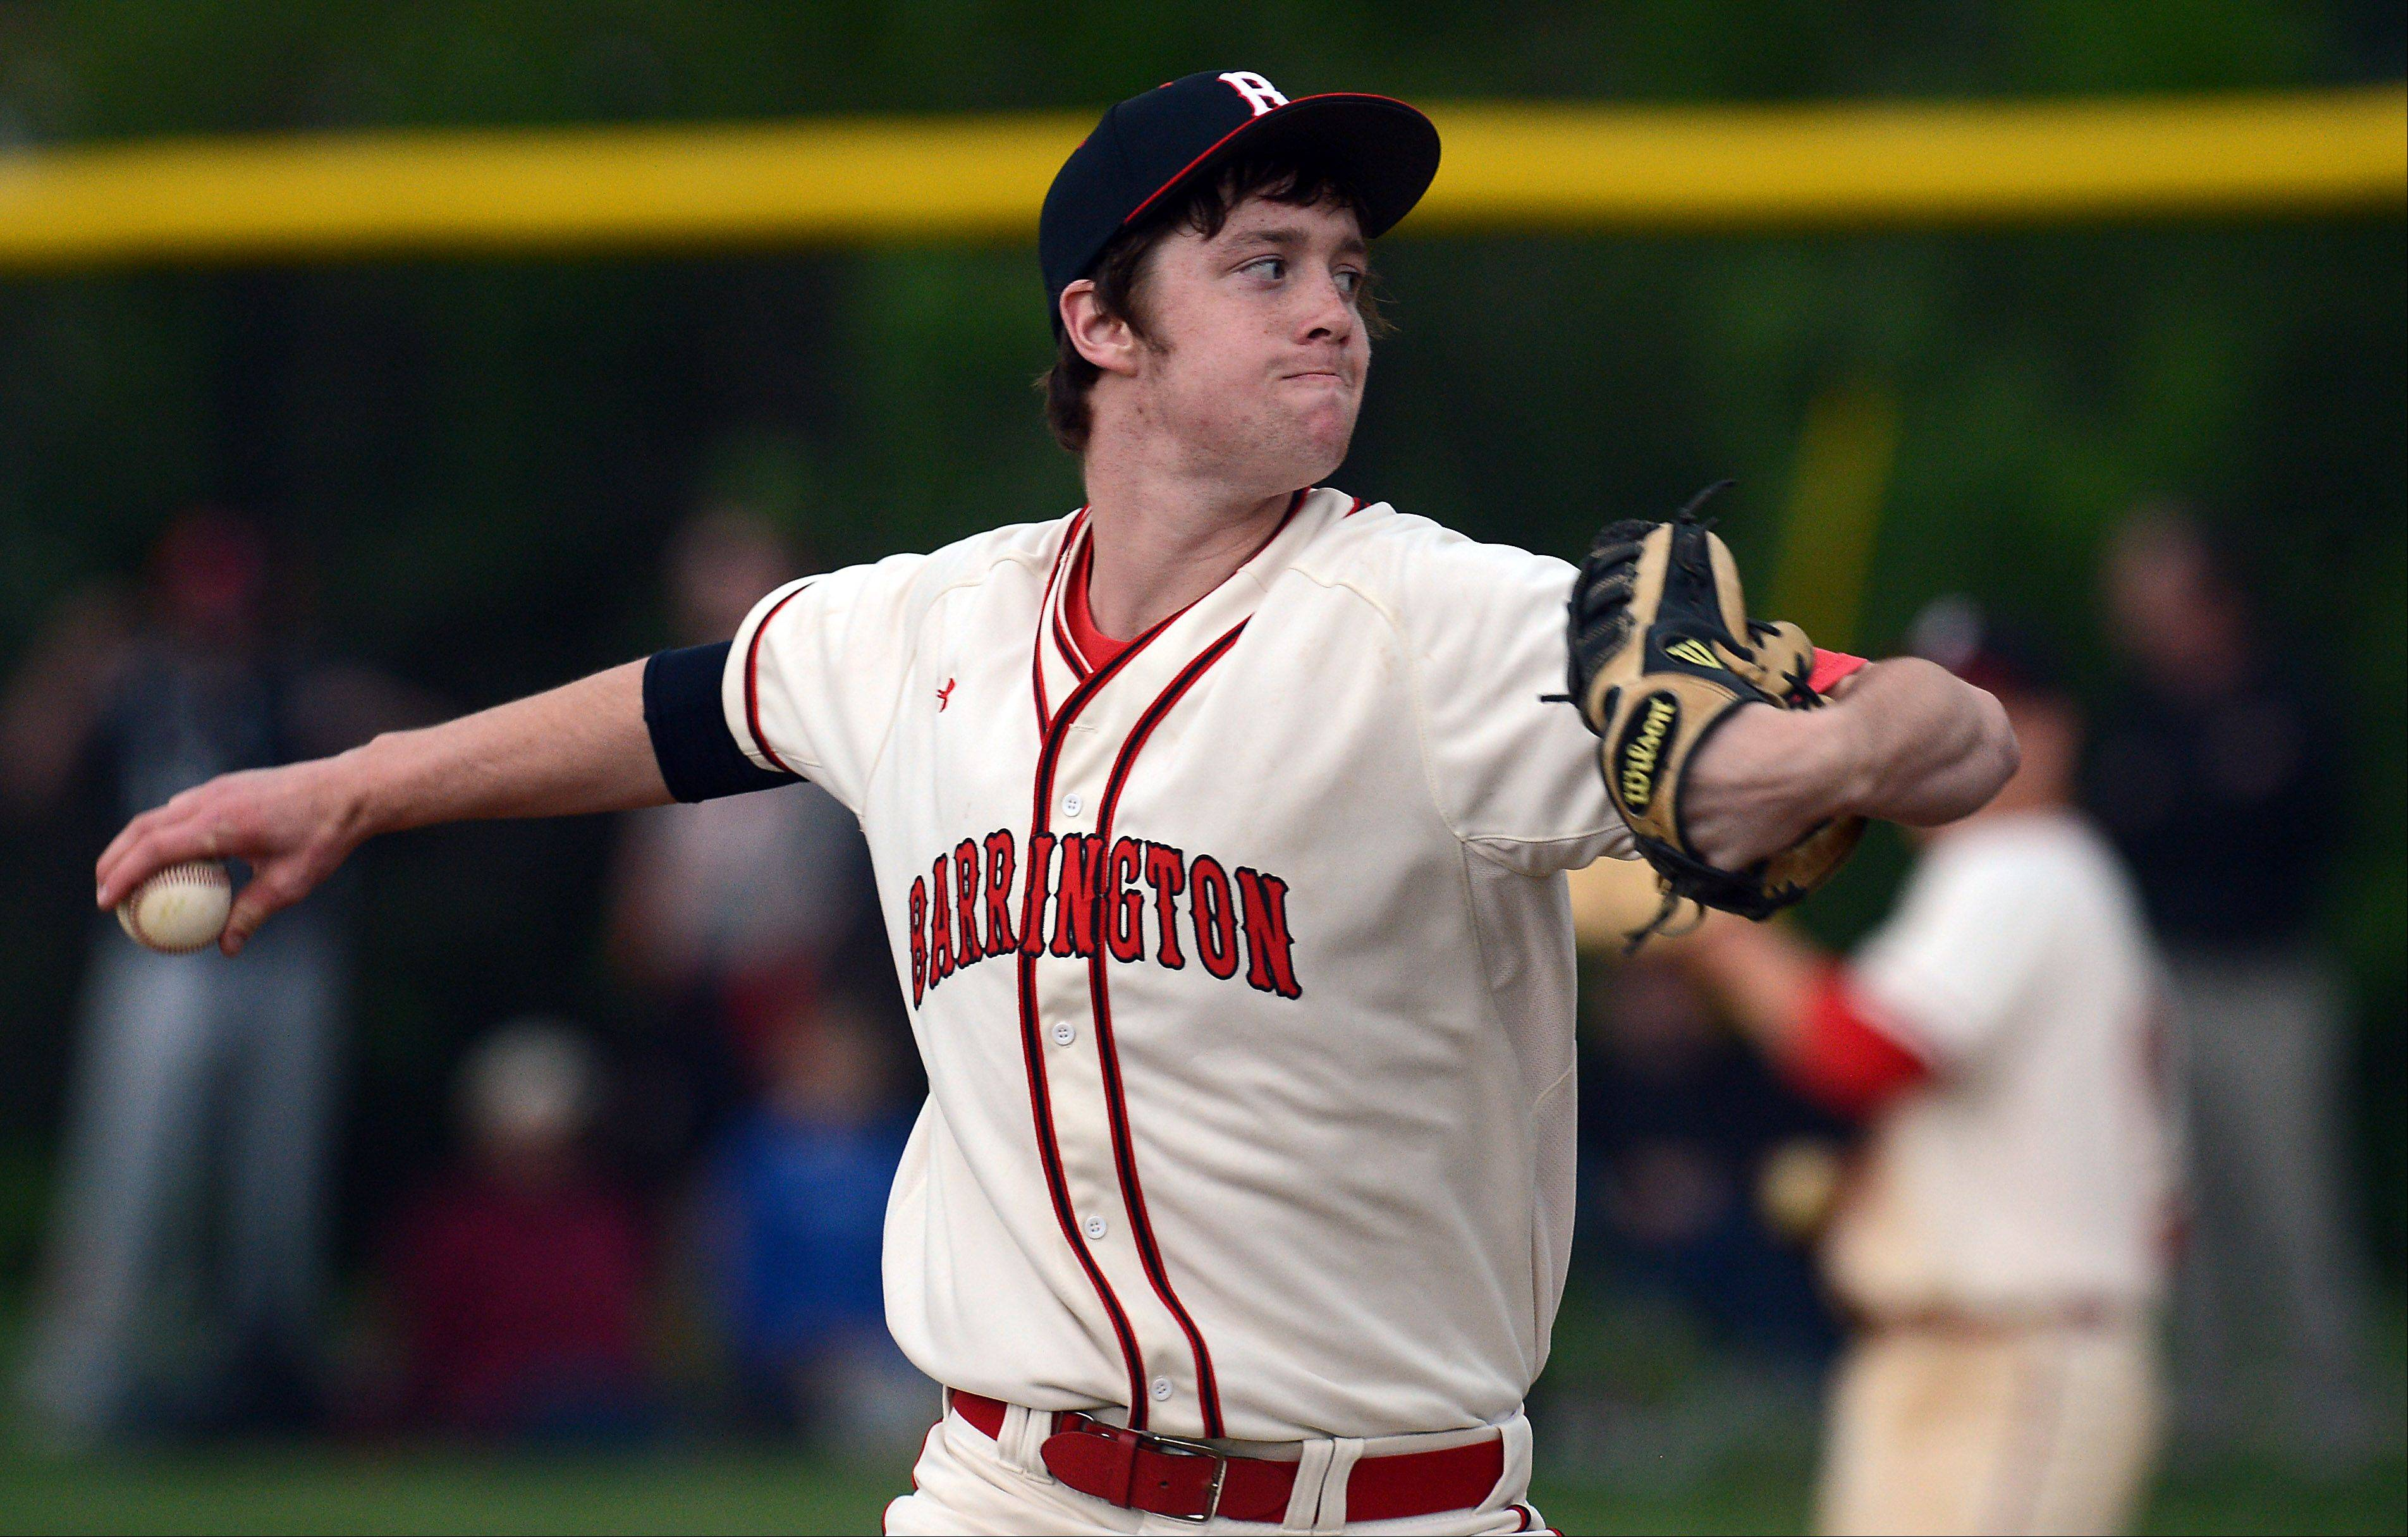 Barrington's Wyatt Trautwein delivers last spring in the Mid-Suburban League title game against Rolling Meadows.